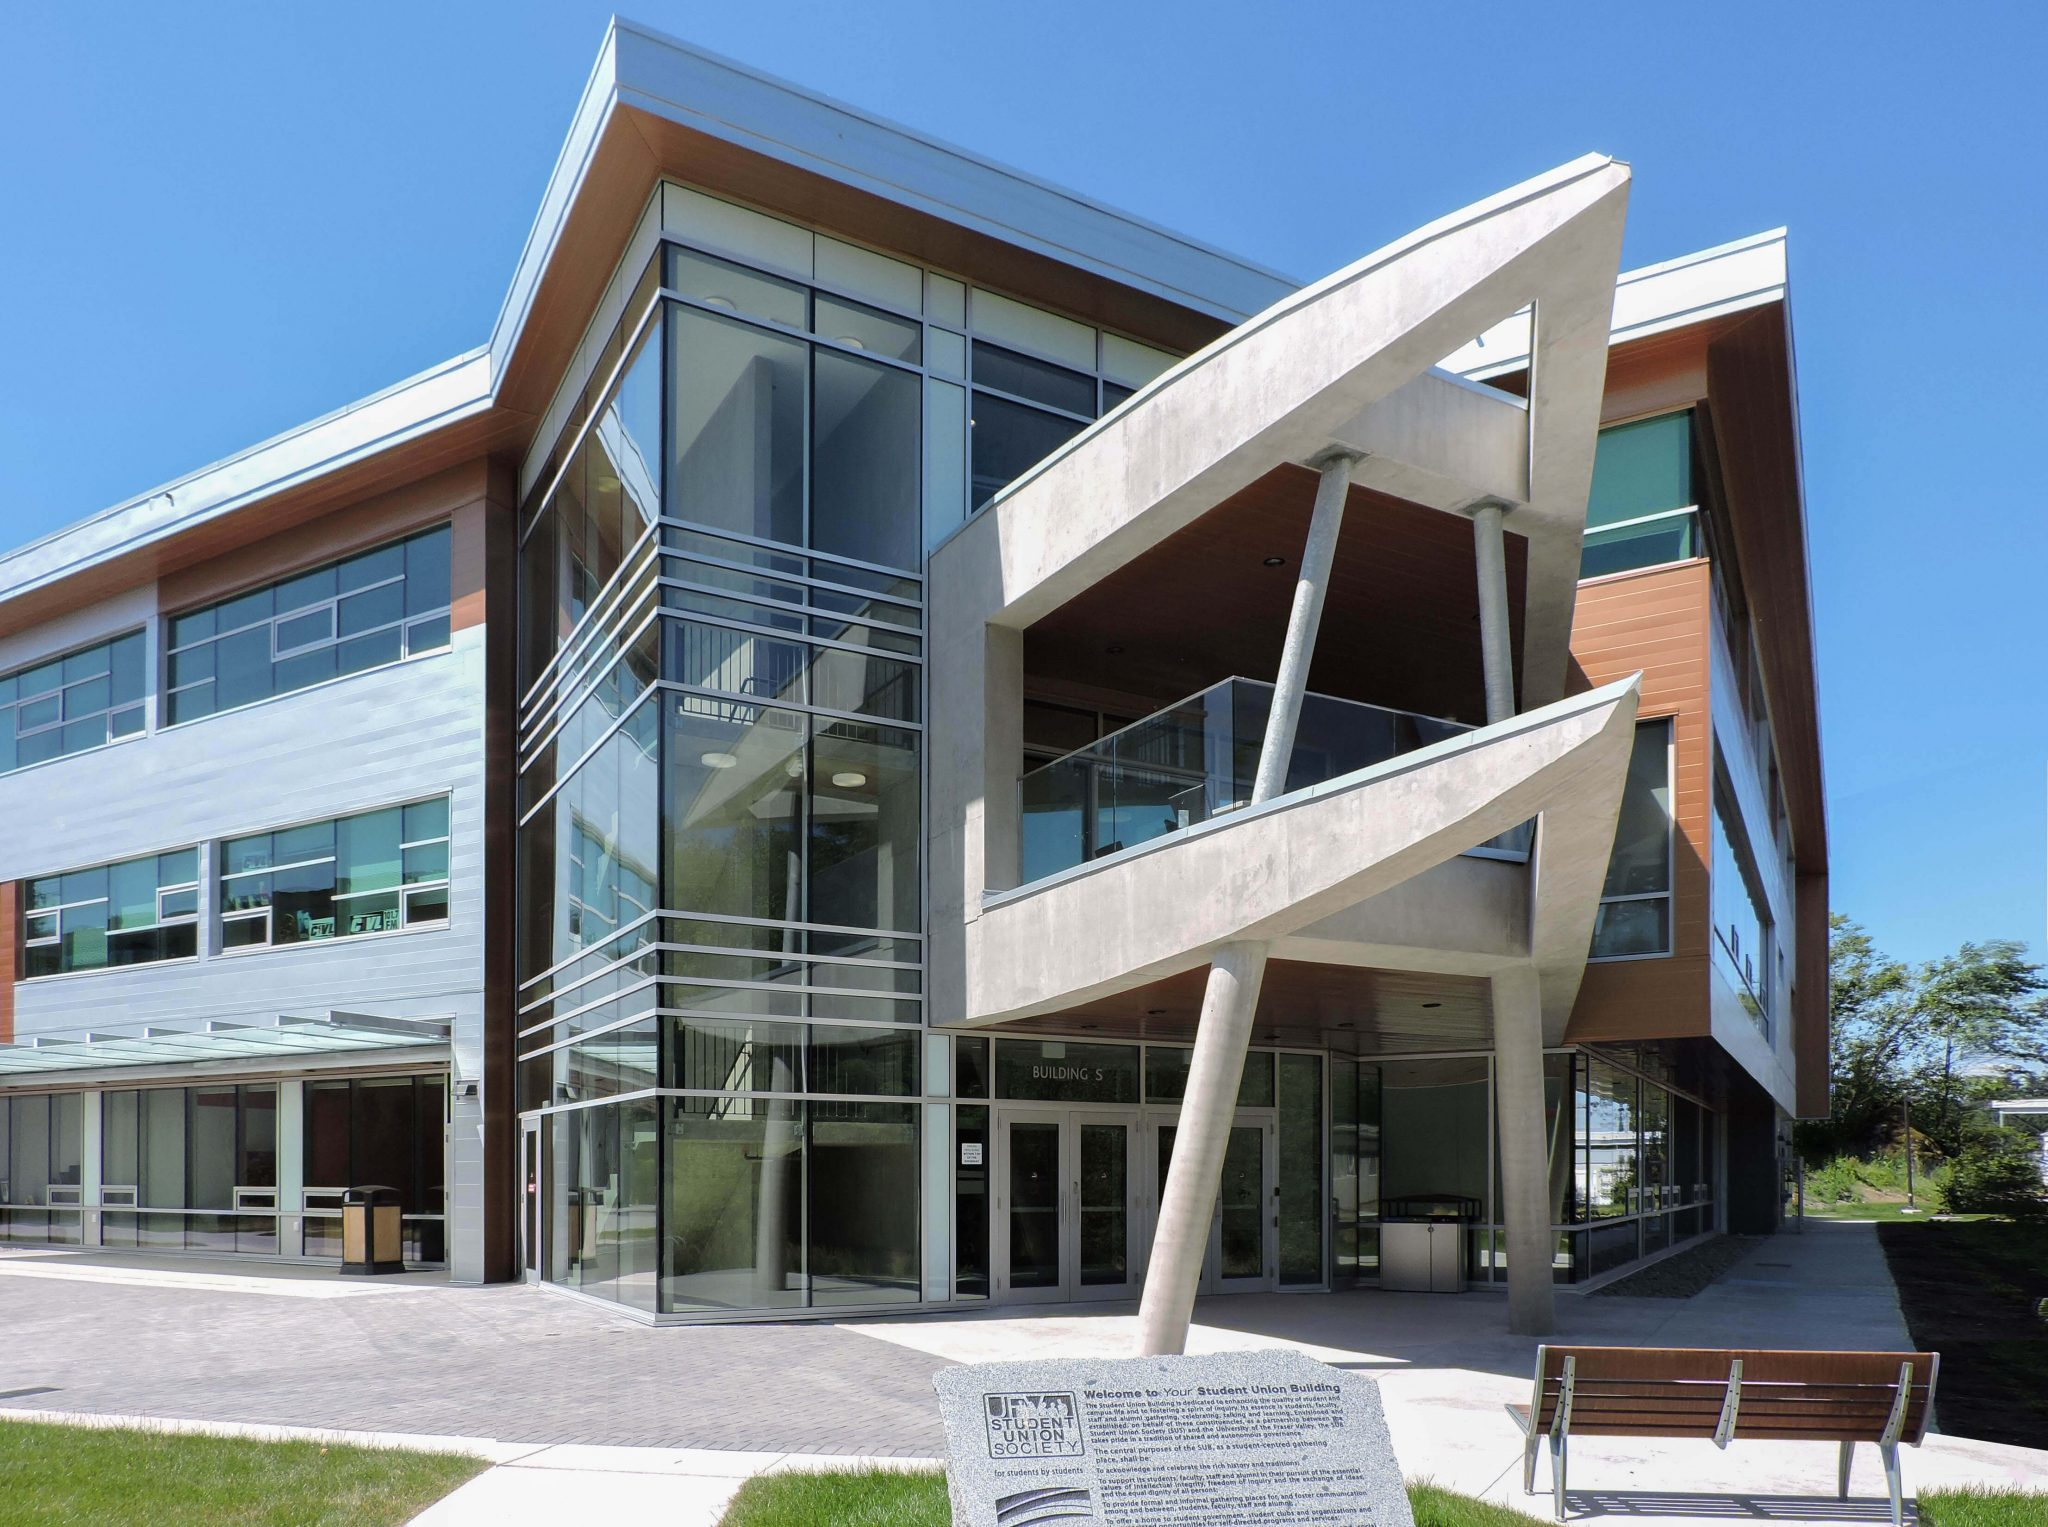 UFV Research Encounters Lectures Focus on Innovation